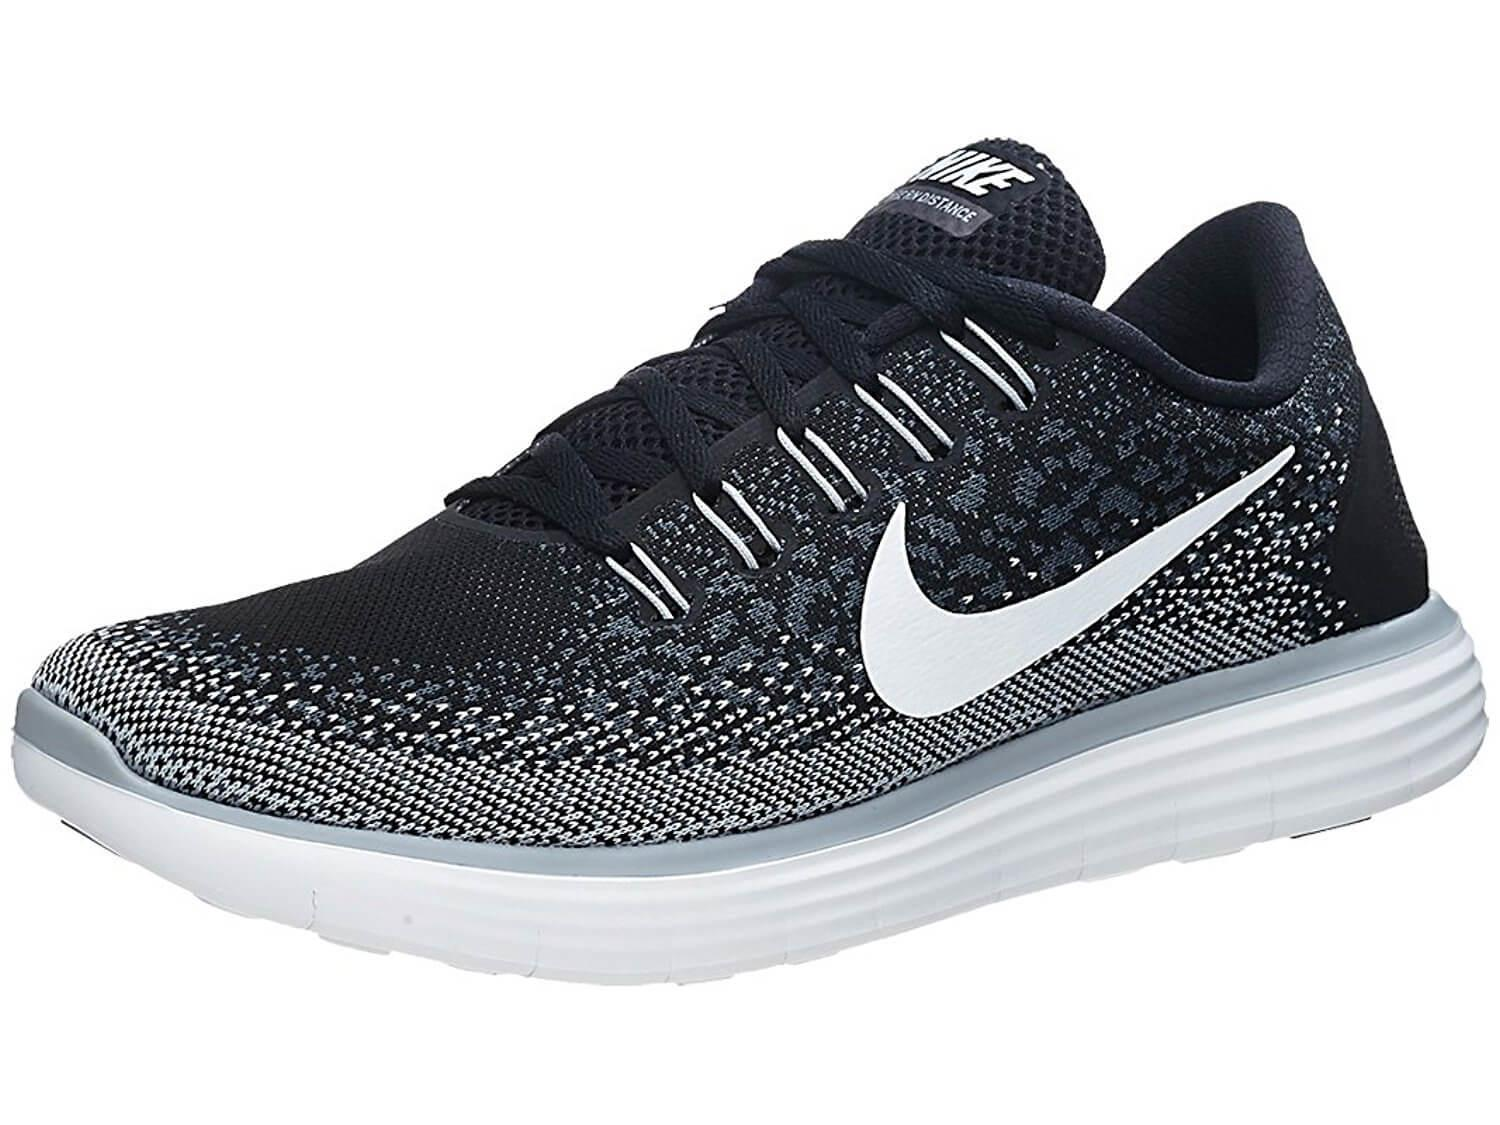 9510e1ef872 The Nike Free RN Distance is an excellent all-around running shoe.